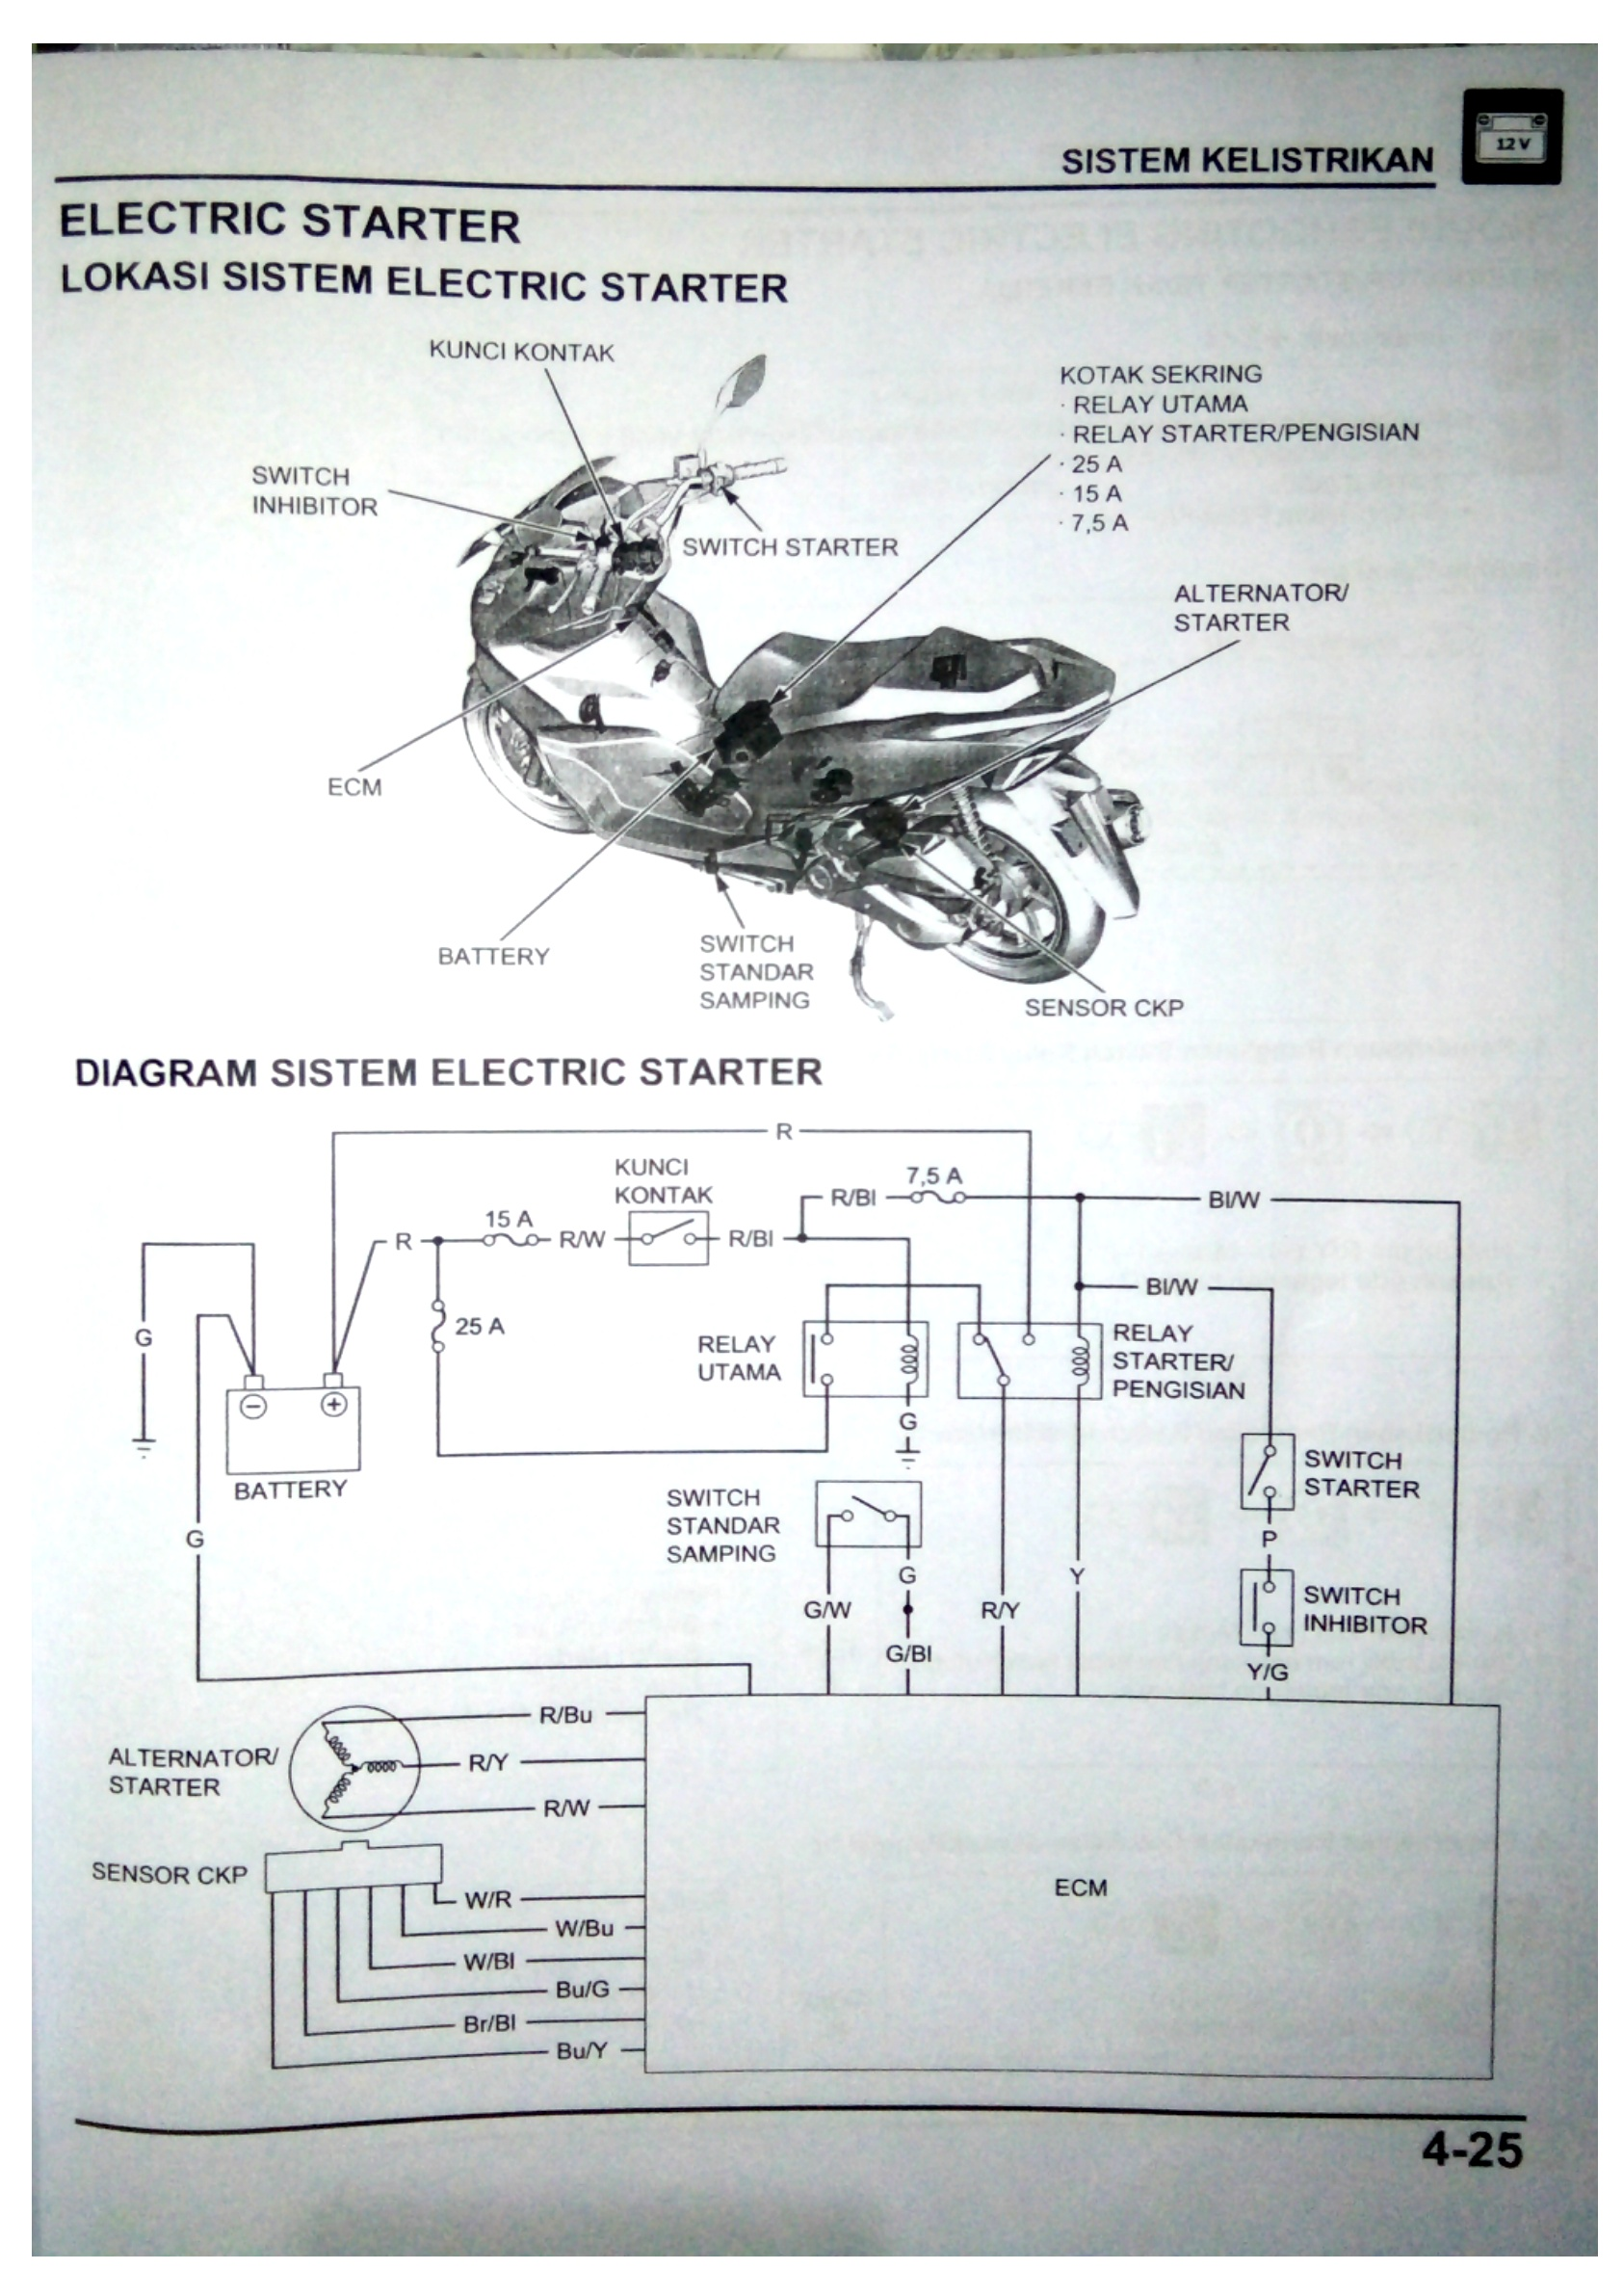 medium resolution of electric wiring system diagram honda new pcx 150 2018 gisix s blog wiring diagram honda pcx wiring diagram honda pcx